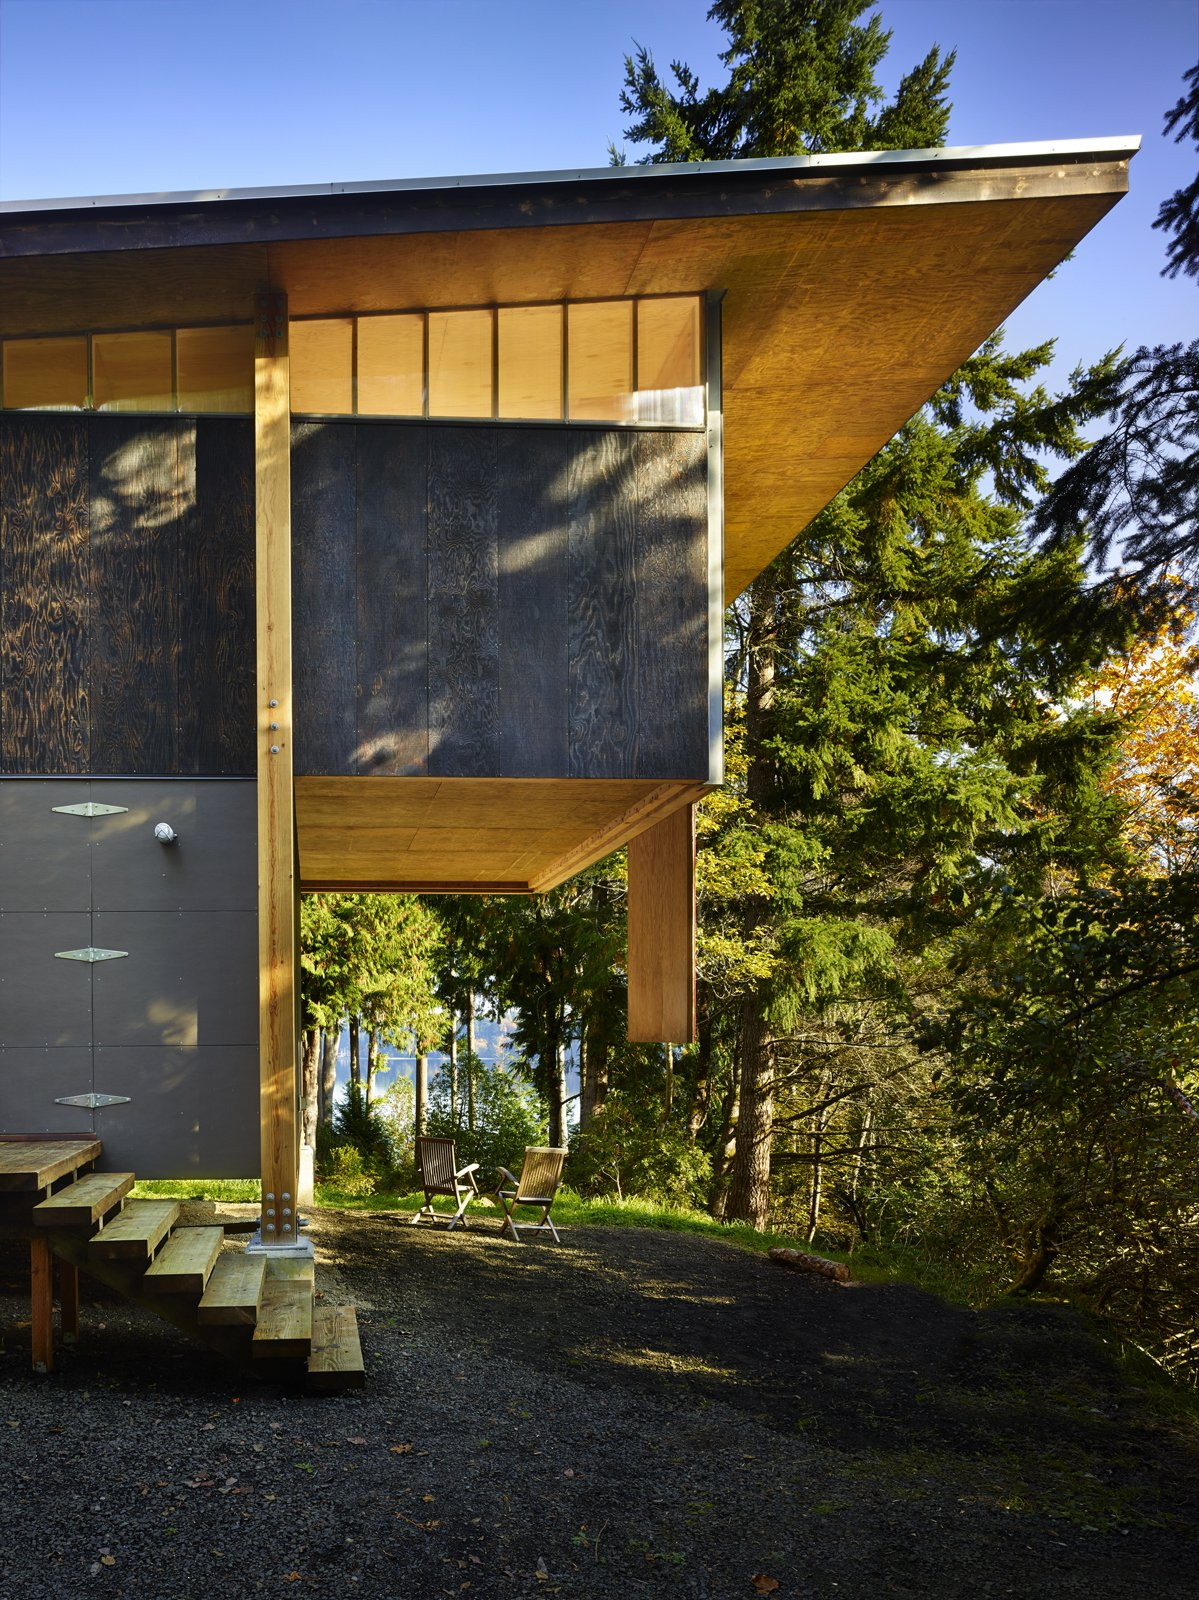 """Exterior, Cabin Building Type, House Building Type, Shed RoofLine, and Wood Siding Material The cantilevered sleeping loft posed a structural challenge. """"The structure is simple, however we explored a number of options for supporting the cantilevered loft,"""" Eerkes says. """"But after comparing costs for large trusses versus a big glulam beam—including labor costs for construction of each—the simplicity of a two-foot glulam beam won out. The steel rod cross bracing provided lateral stability in the longitudinal direction.""""  Search """"5 gravity defying cantilevers"""" from An Eco-Friendly Compact Cabin in Washington"""